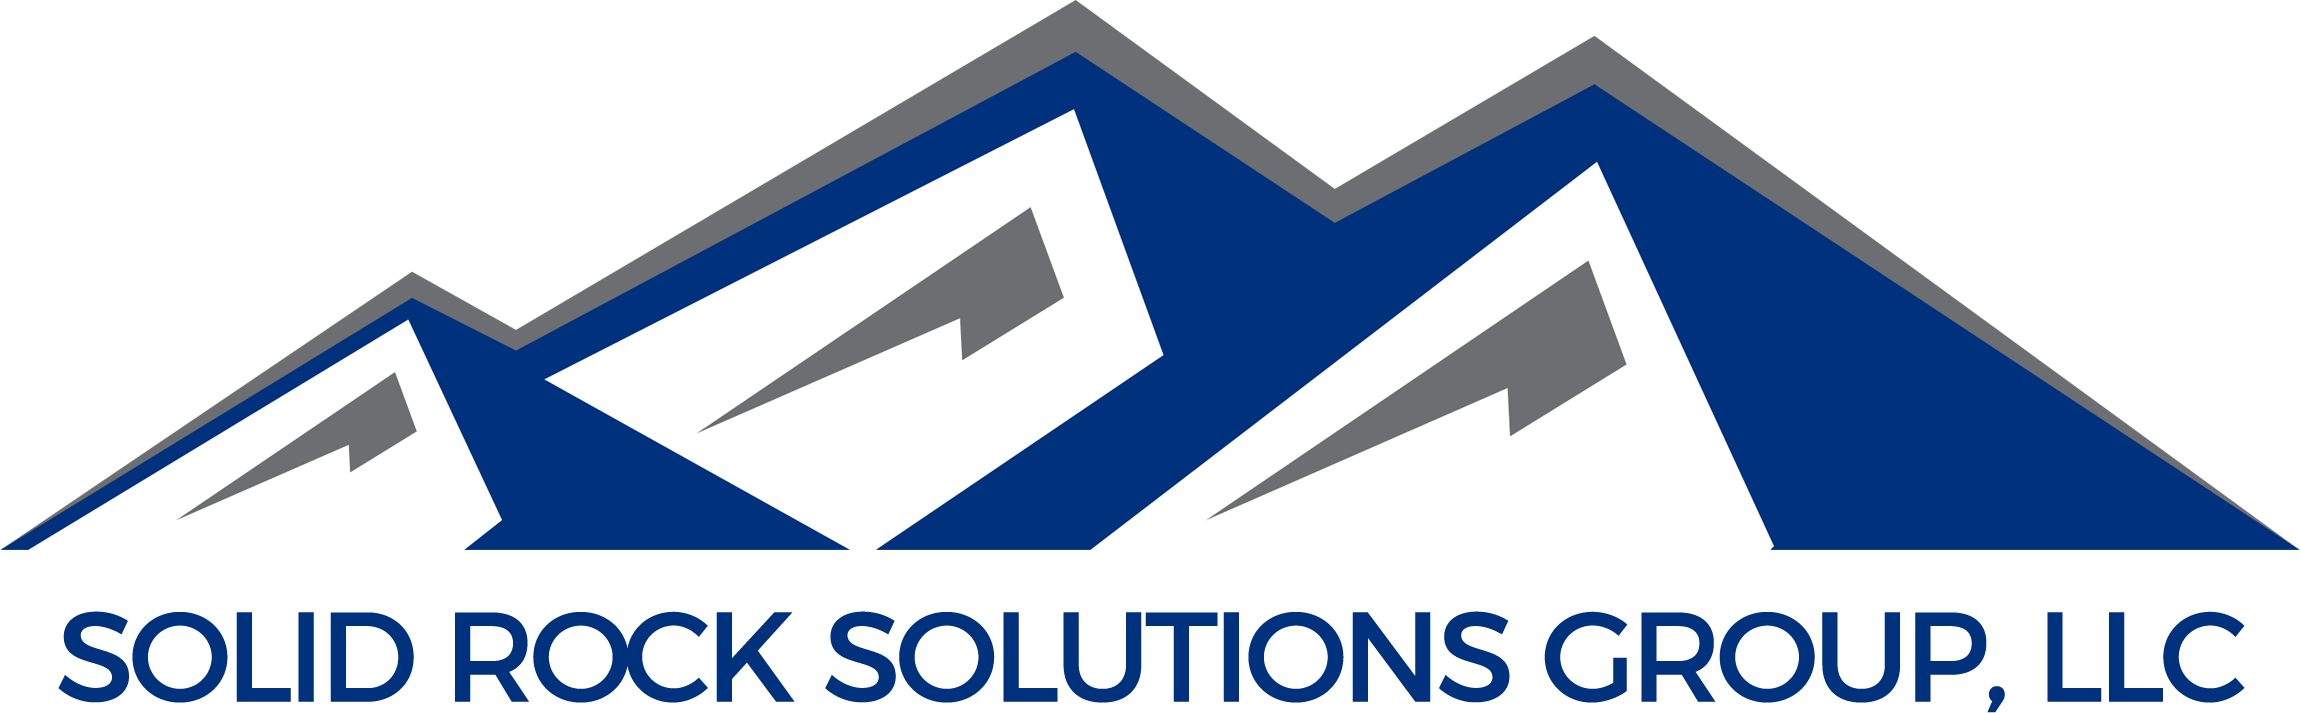 Exclusive Interview With the CEO of Solid Rock Solutions Group